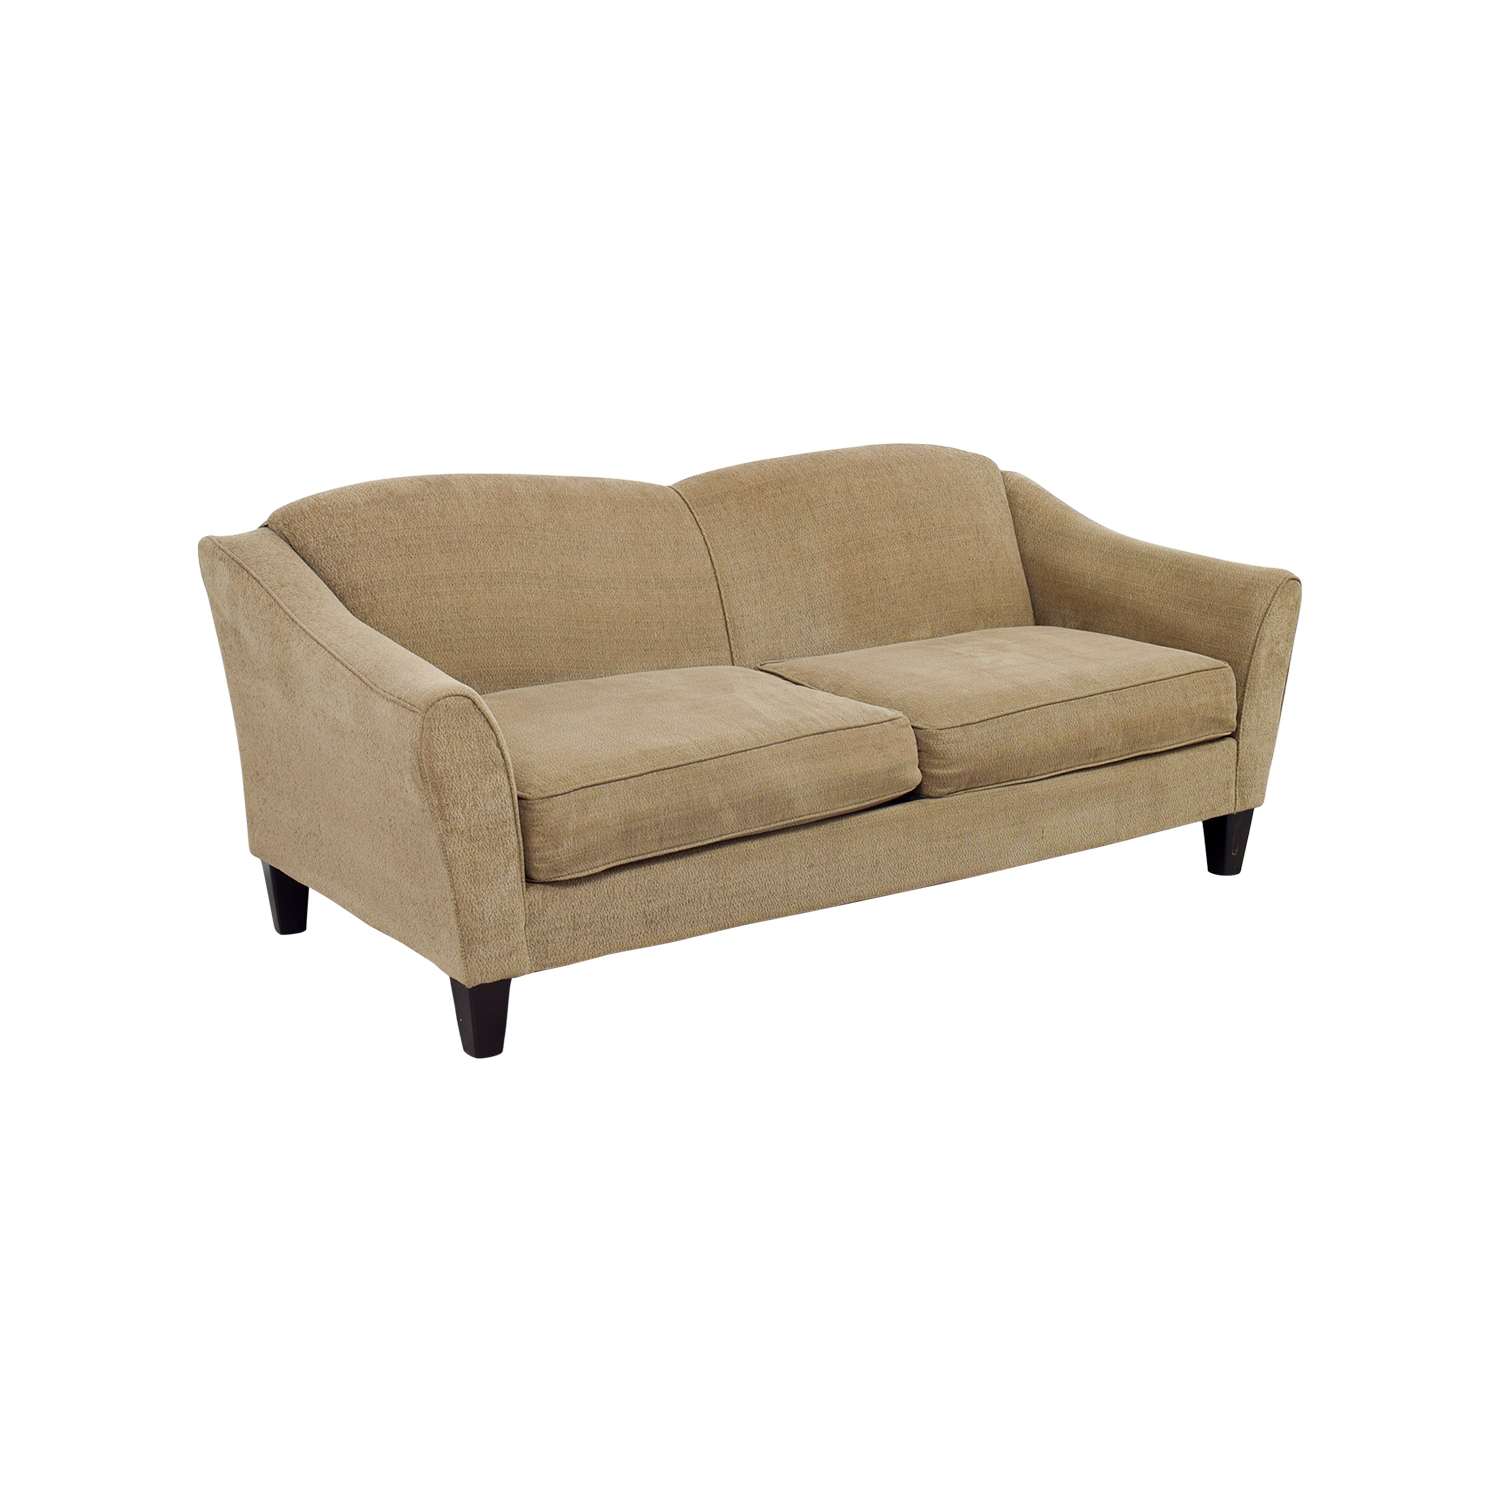 43 Off Bob 39 S Furniture Bob 39 S Furniture Tessa Beige Sofa Sofas